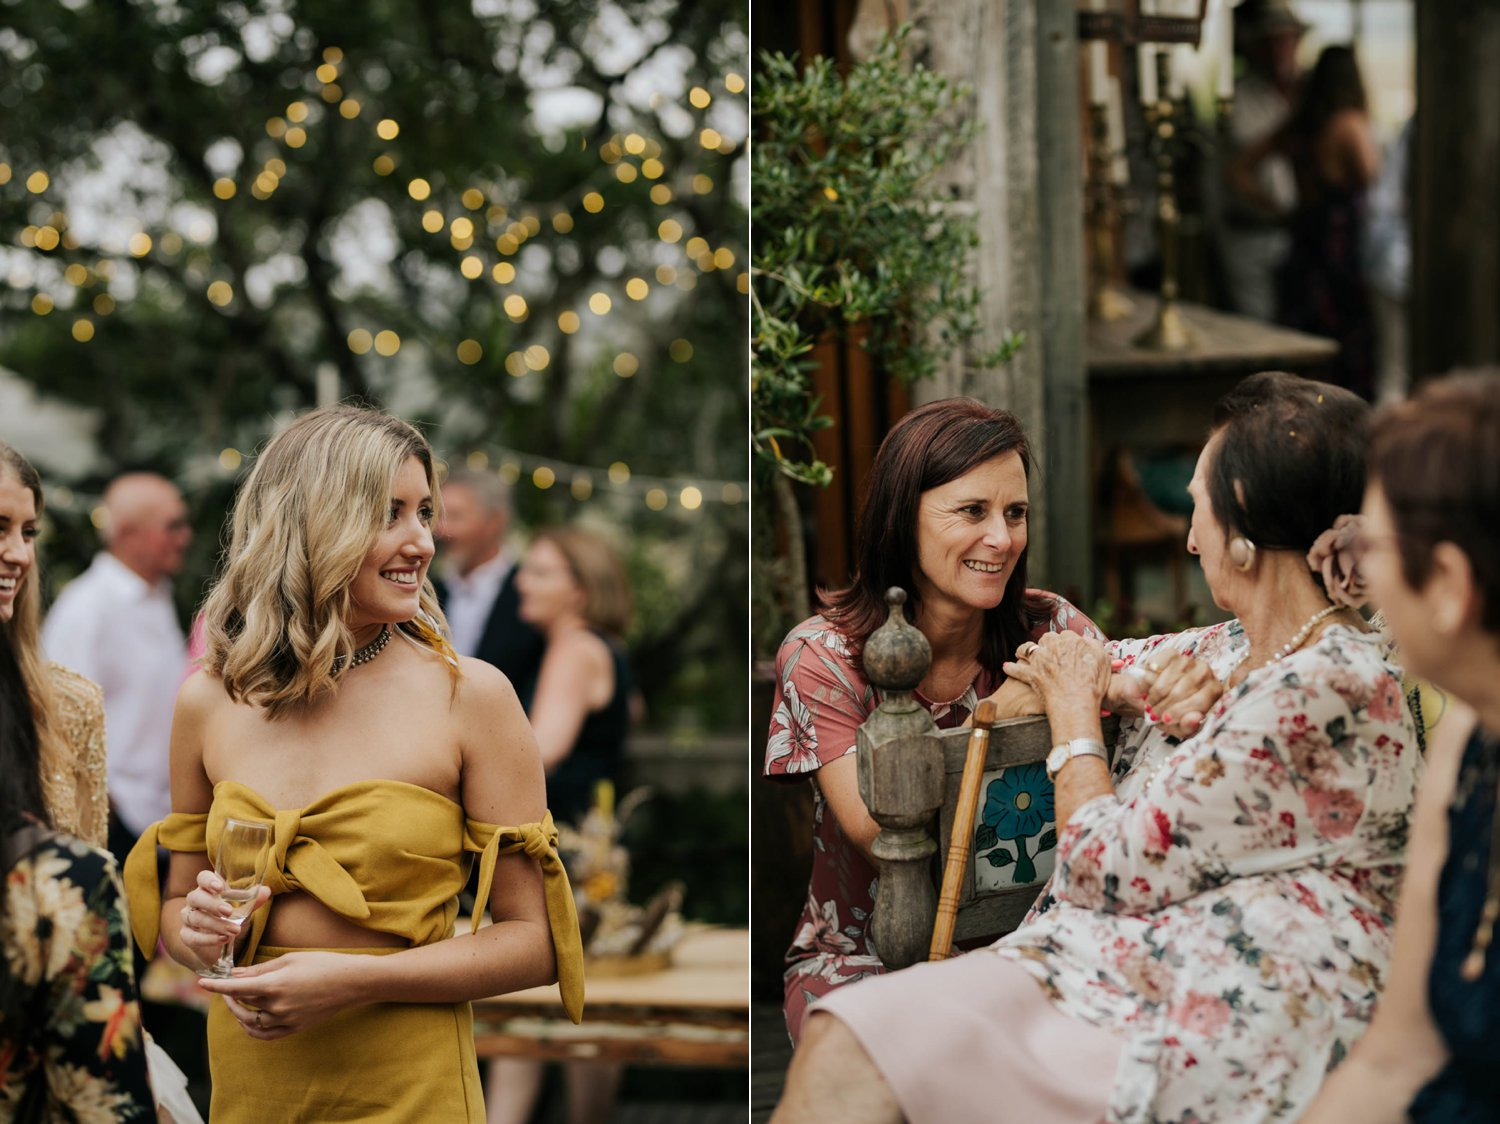 Candid and natural wedding photographer at Emily Moon River Lodge wedding in Plett, Garden Route, South Africa